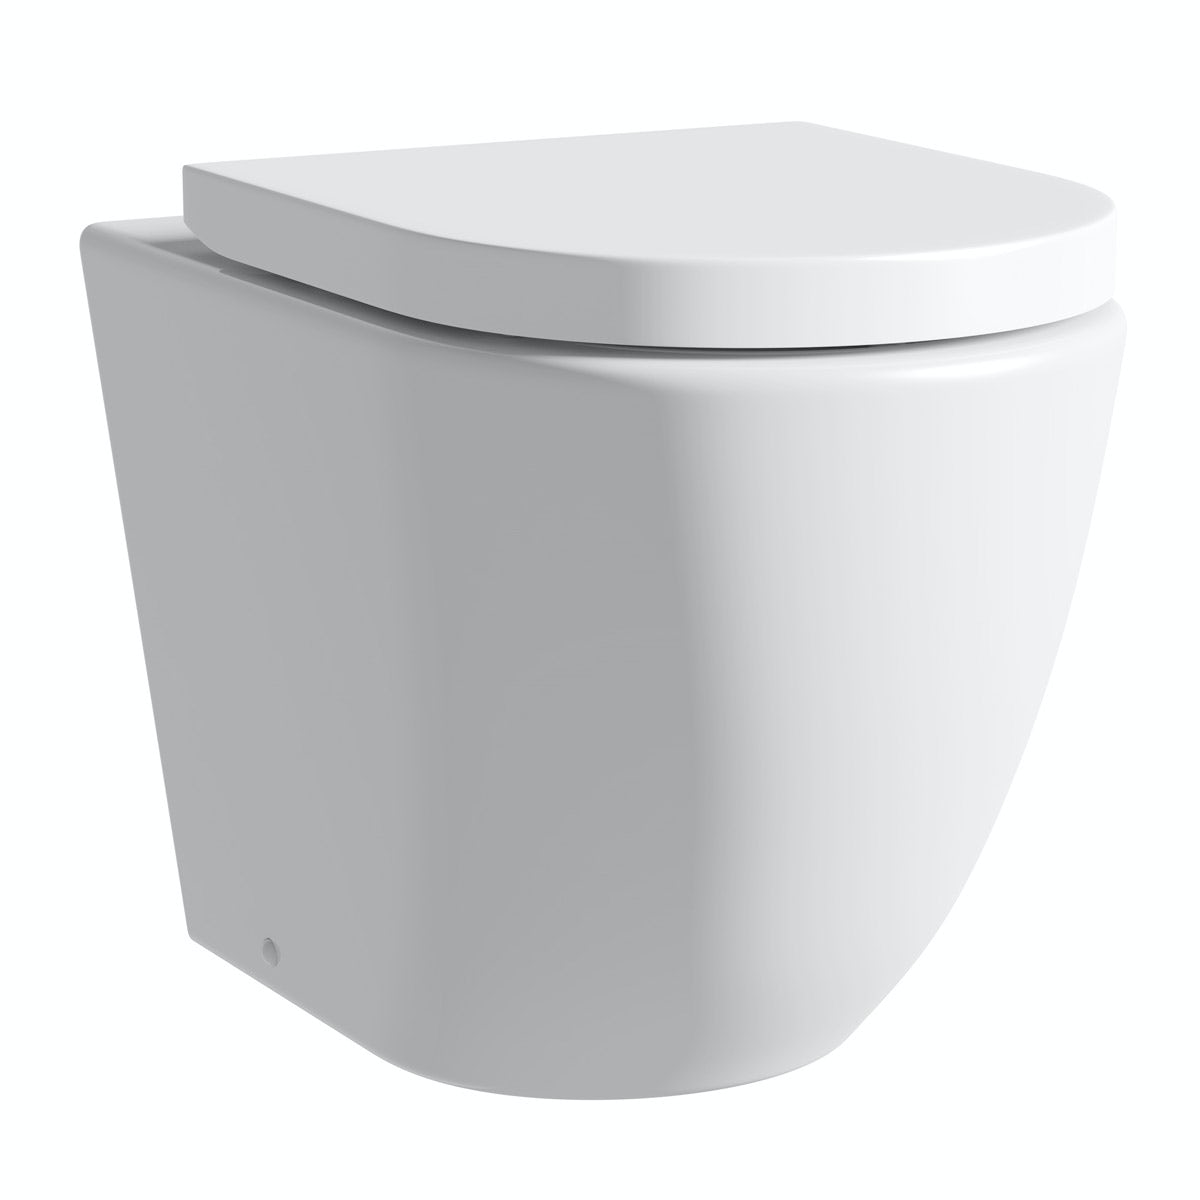 Mode Harrison rimless back to wall toilet with soft close seat